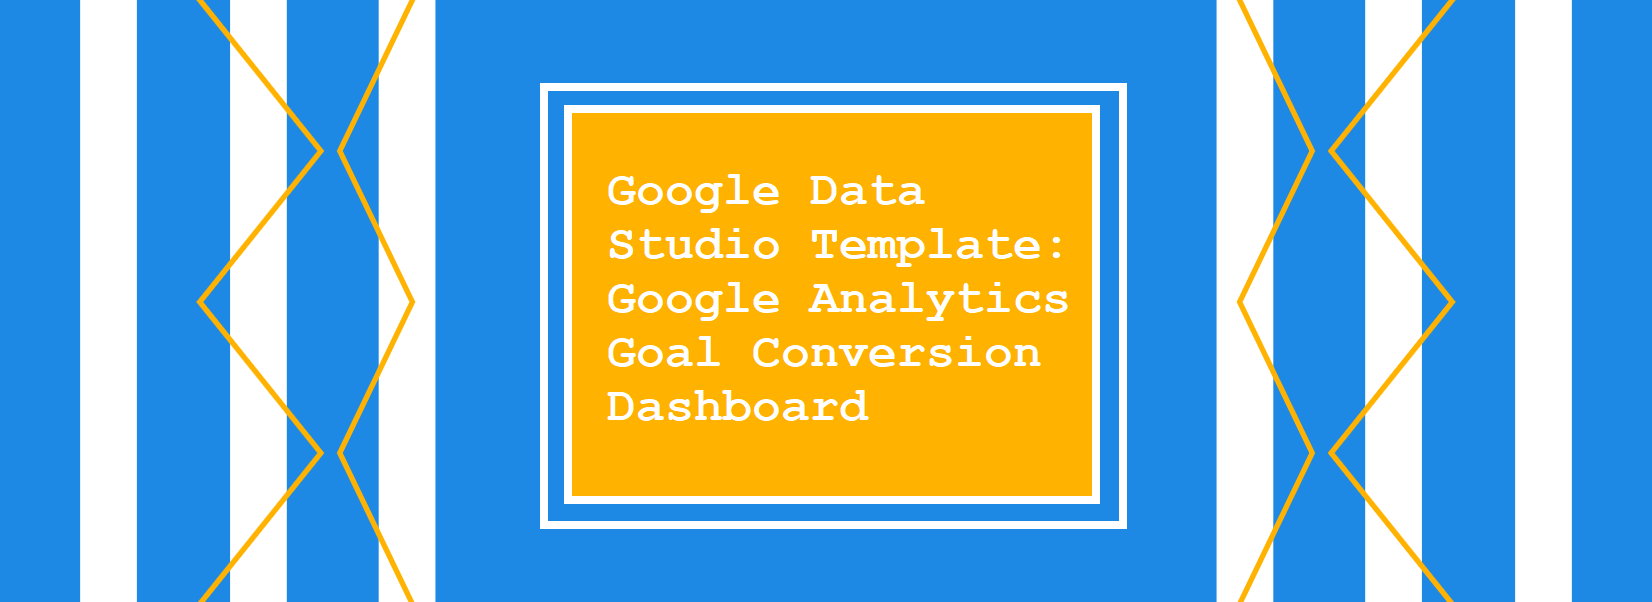 Google Data Studio Template Google Analytics Goal Conversion Dashboard